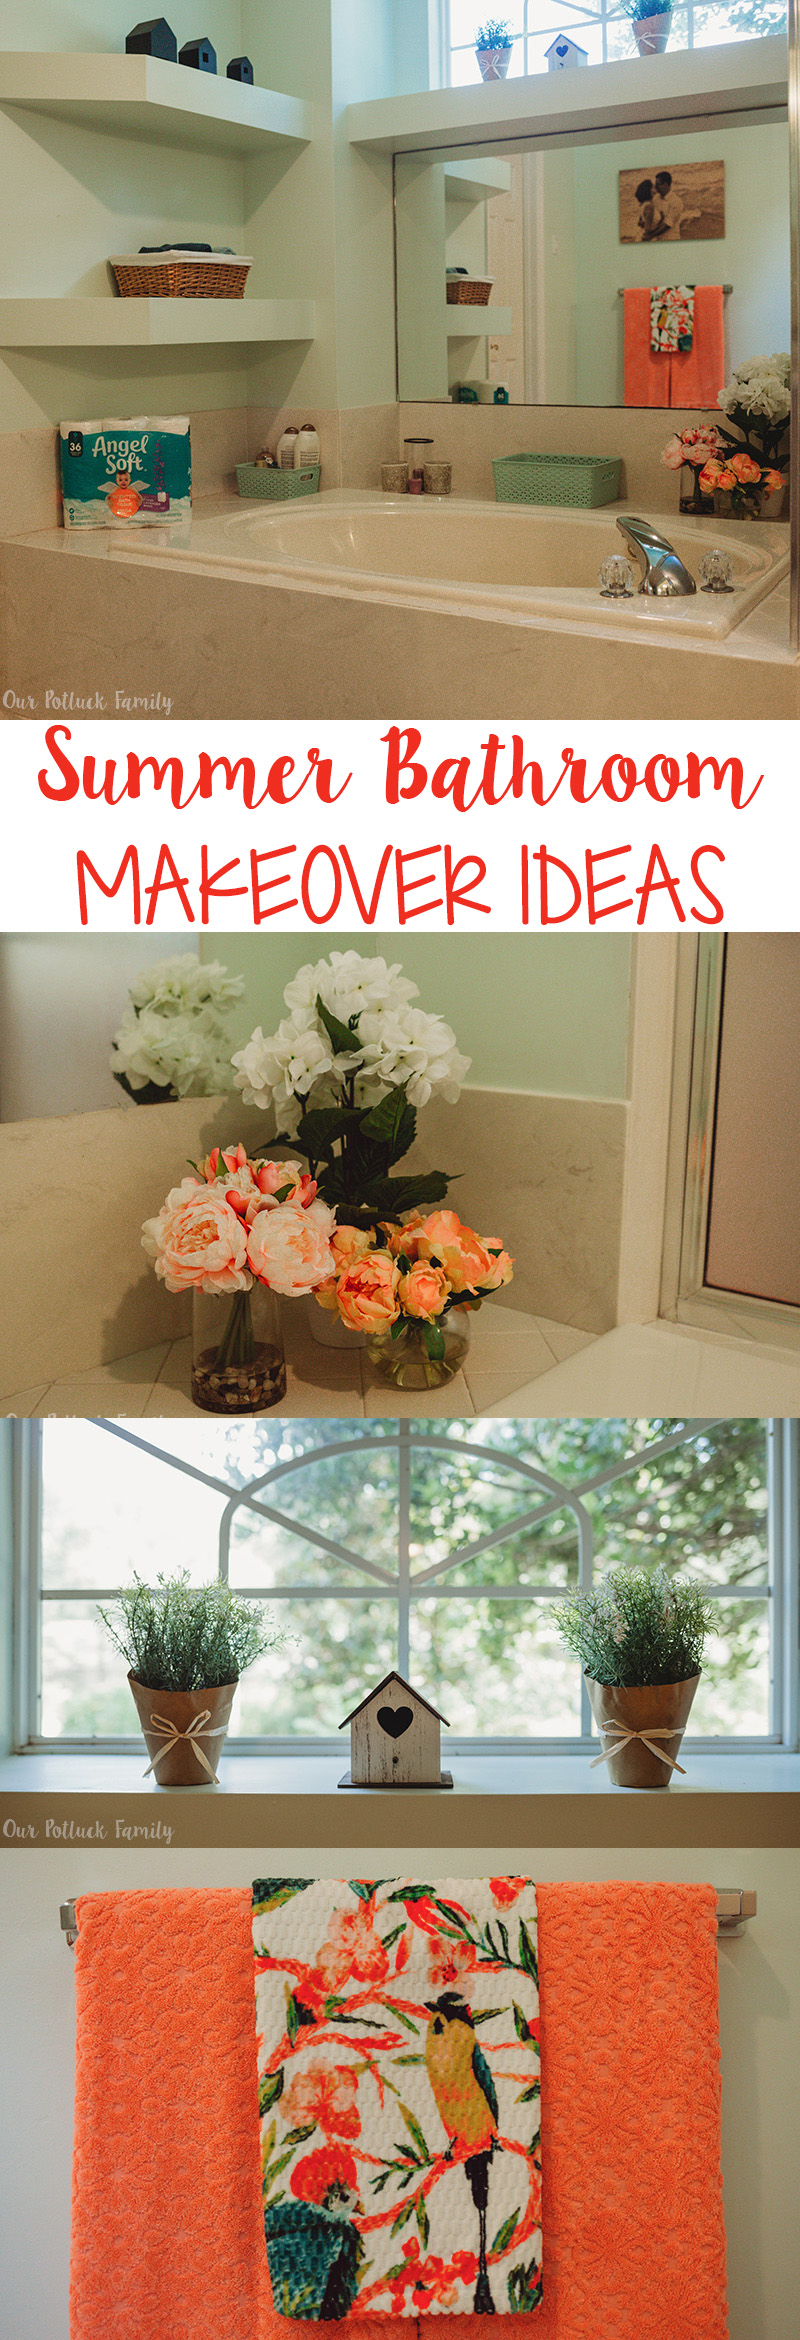 Summer Bathroom Makeover ideas